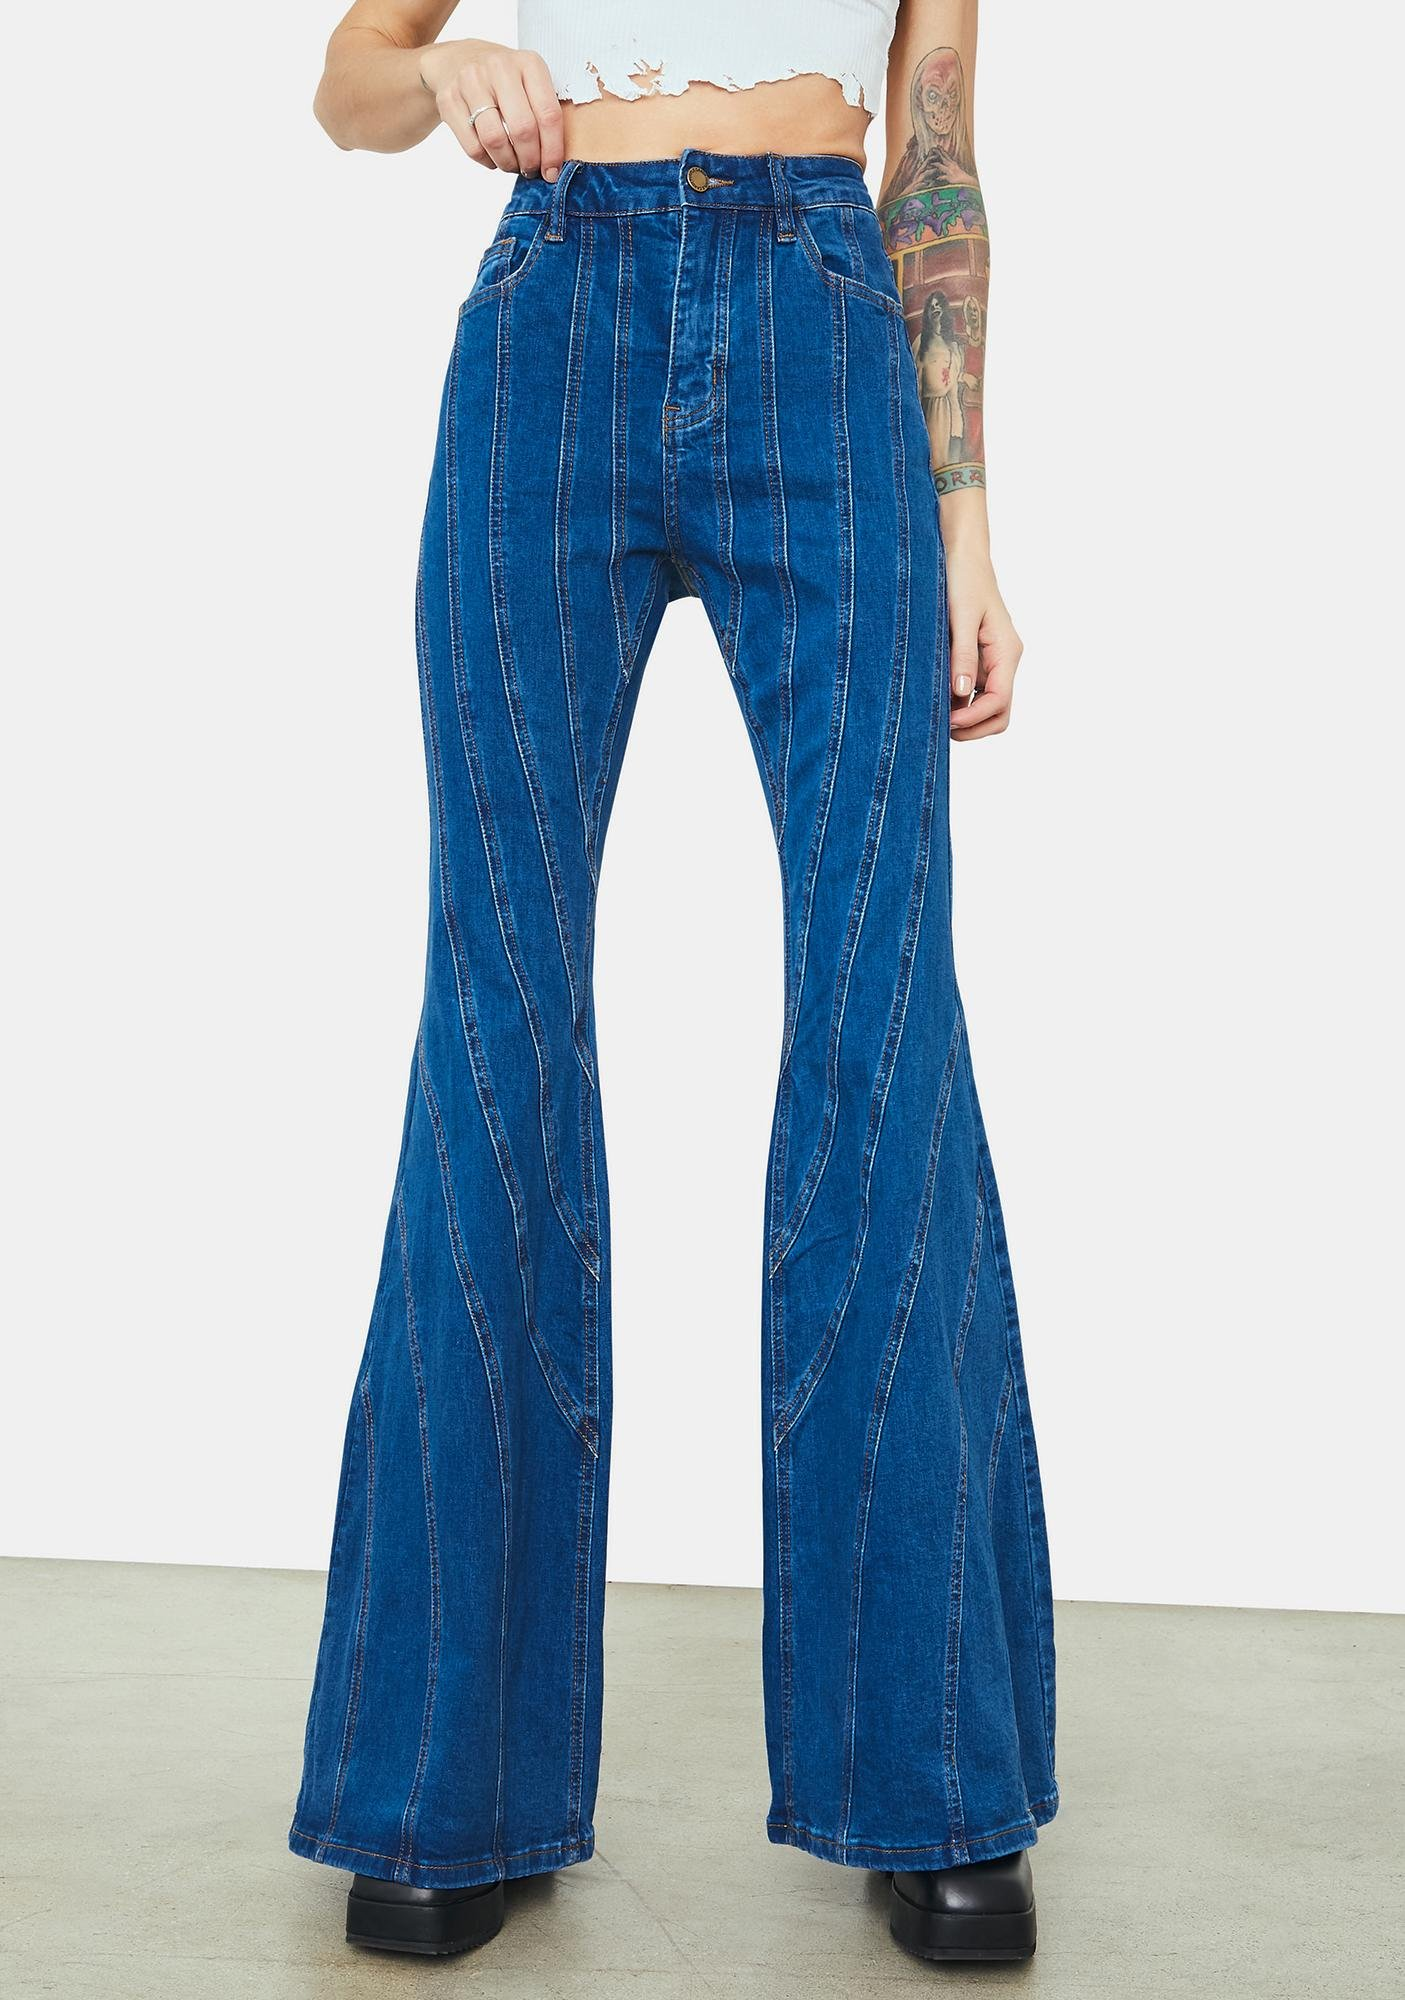 Player Plan Vertical Striped Flared Denim Jeans